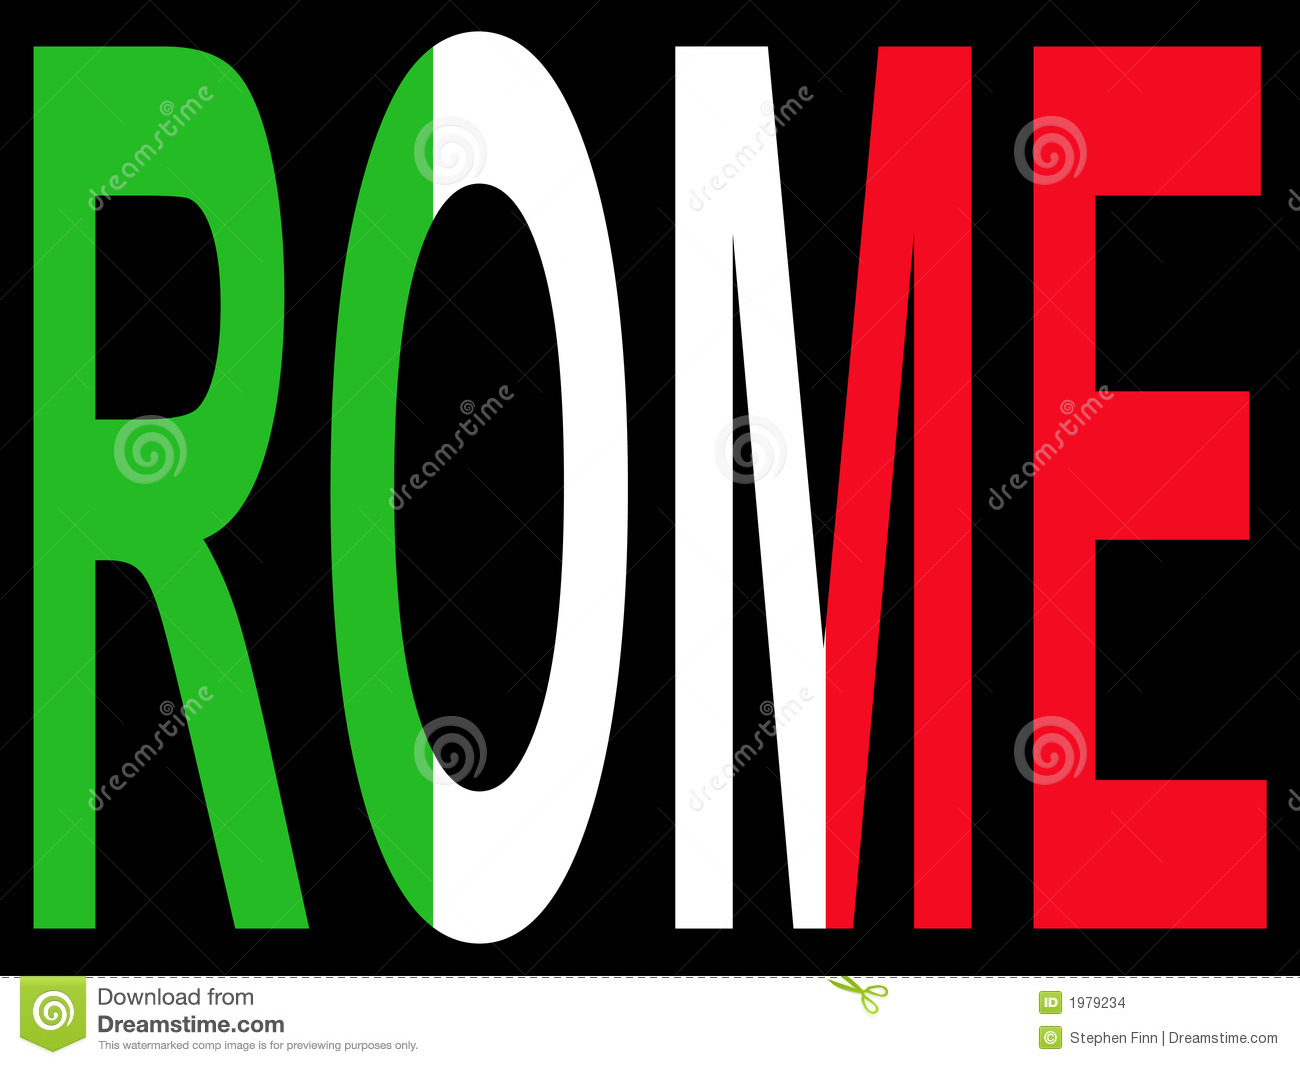 City of rome stock vector illustration of colorful symbol 1979234 city of rome biocorpaavc